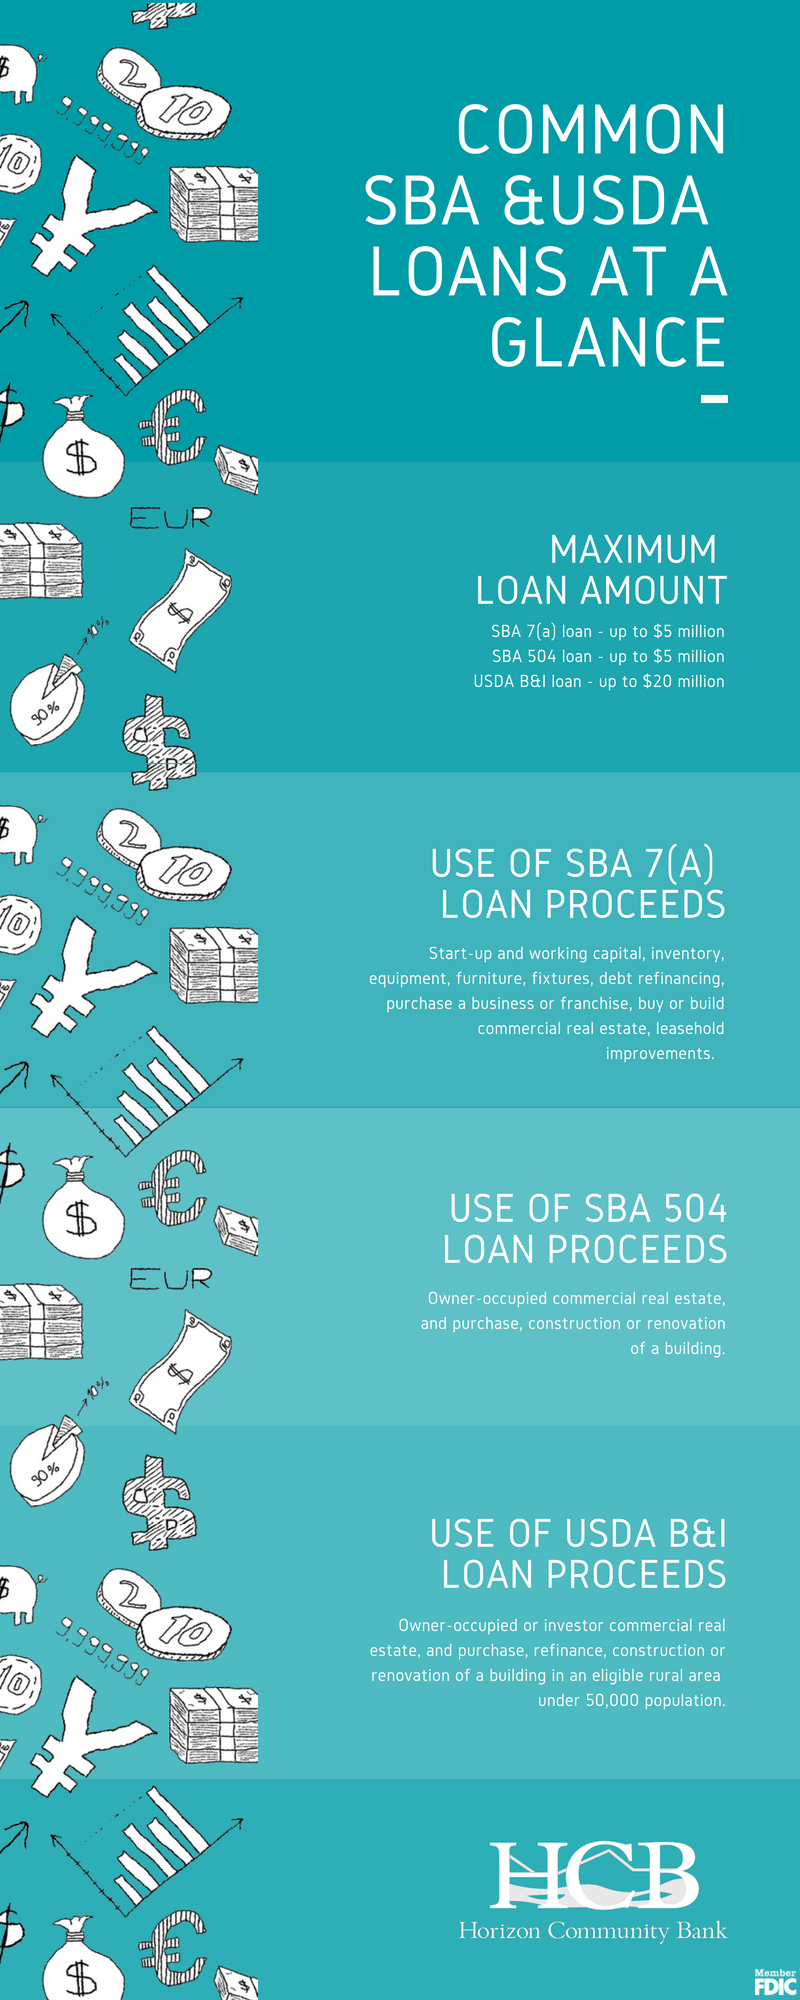 SBA loans at a glance infographic v4